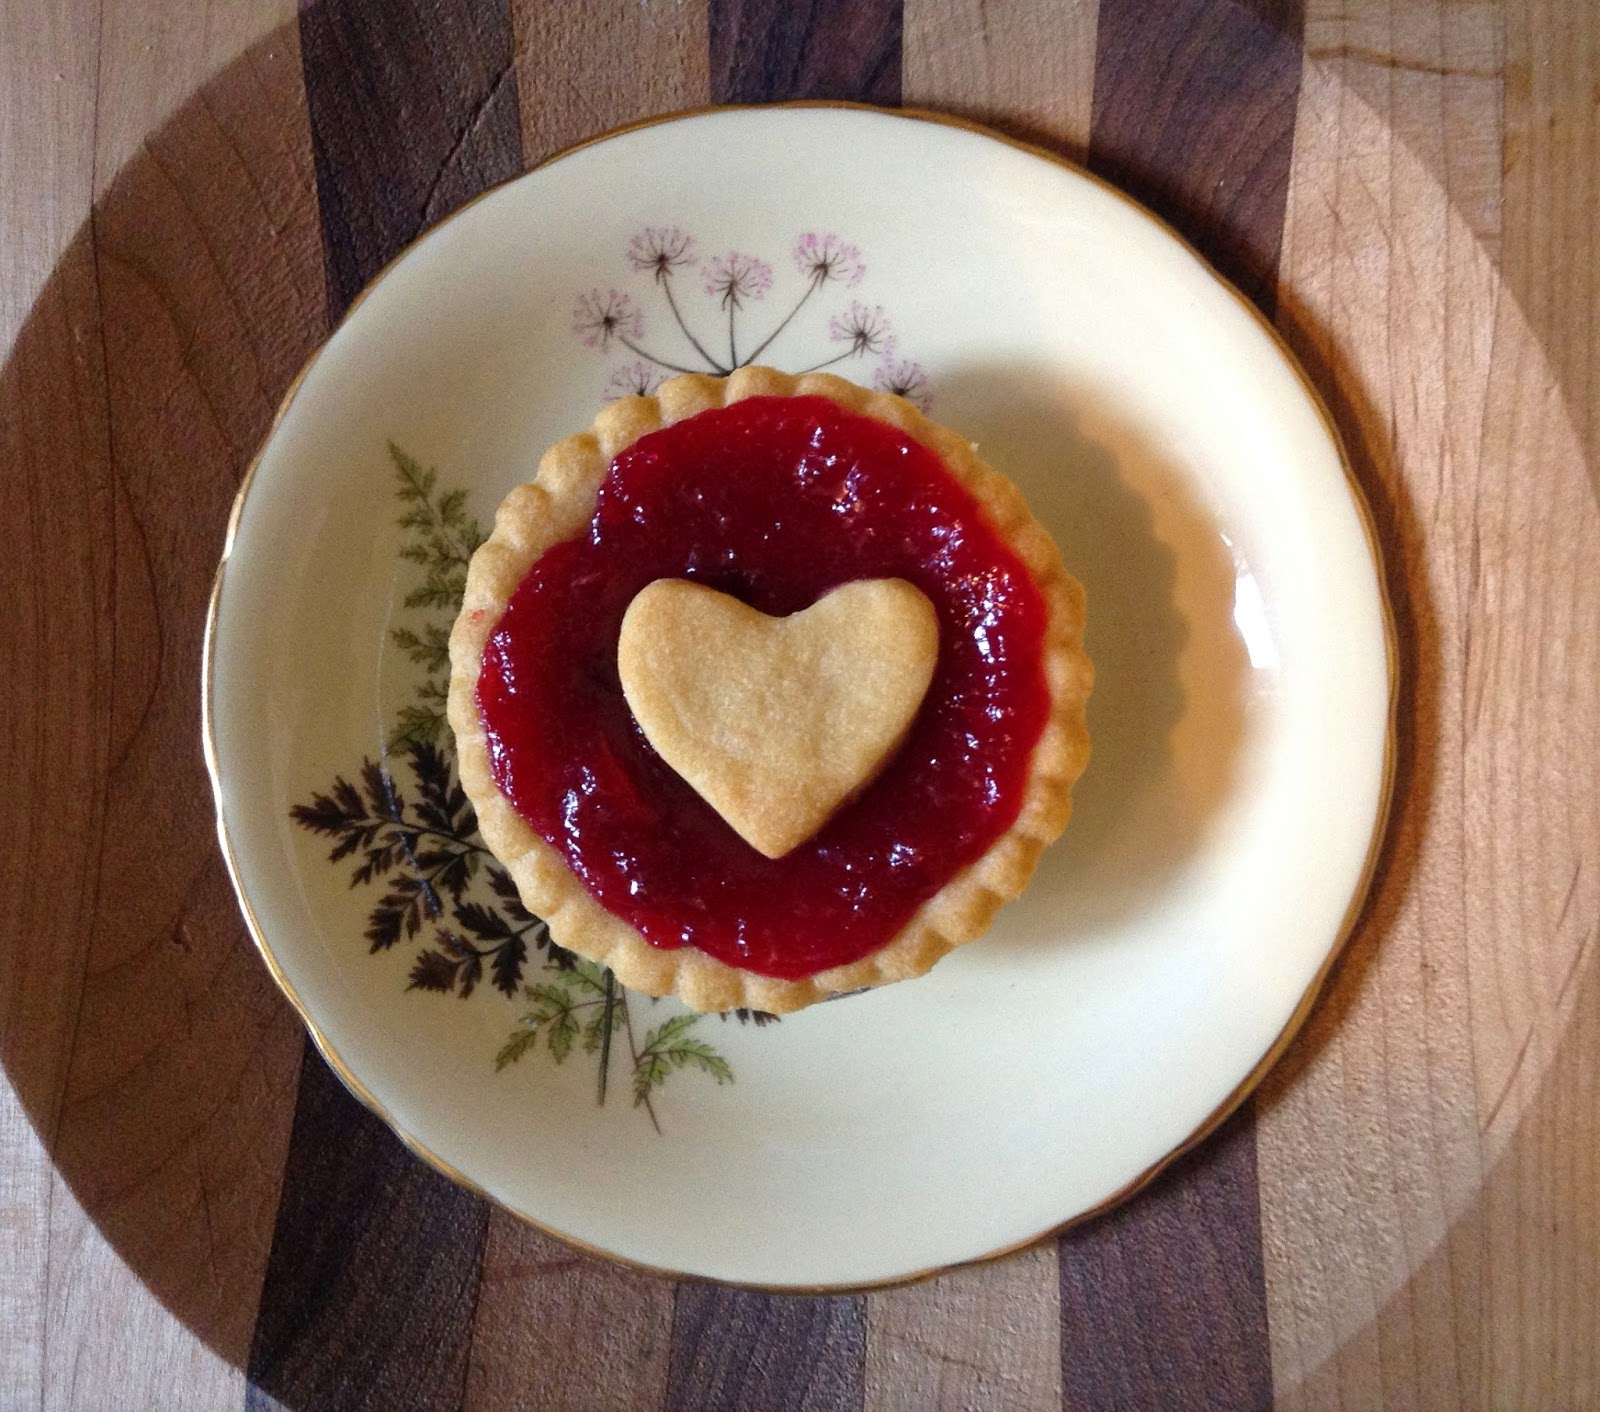 Cranberry Tart with Heart cutout